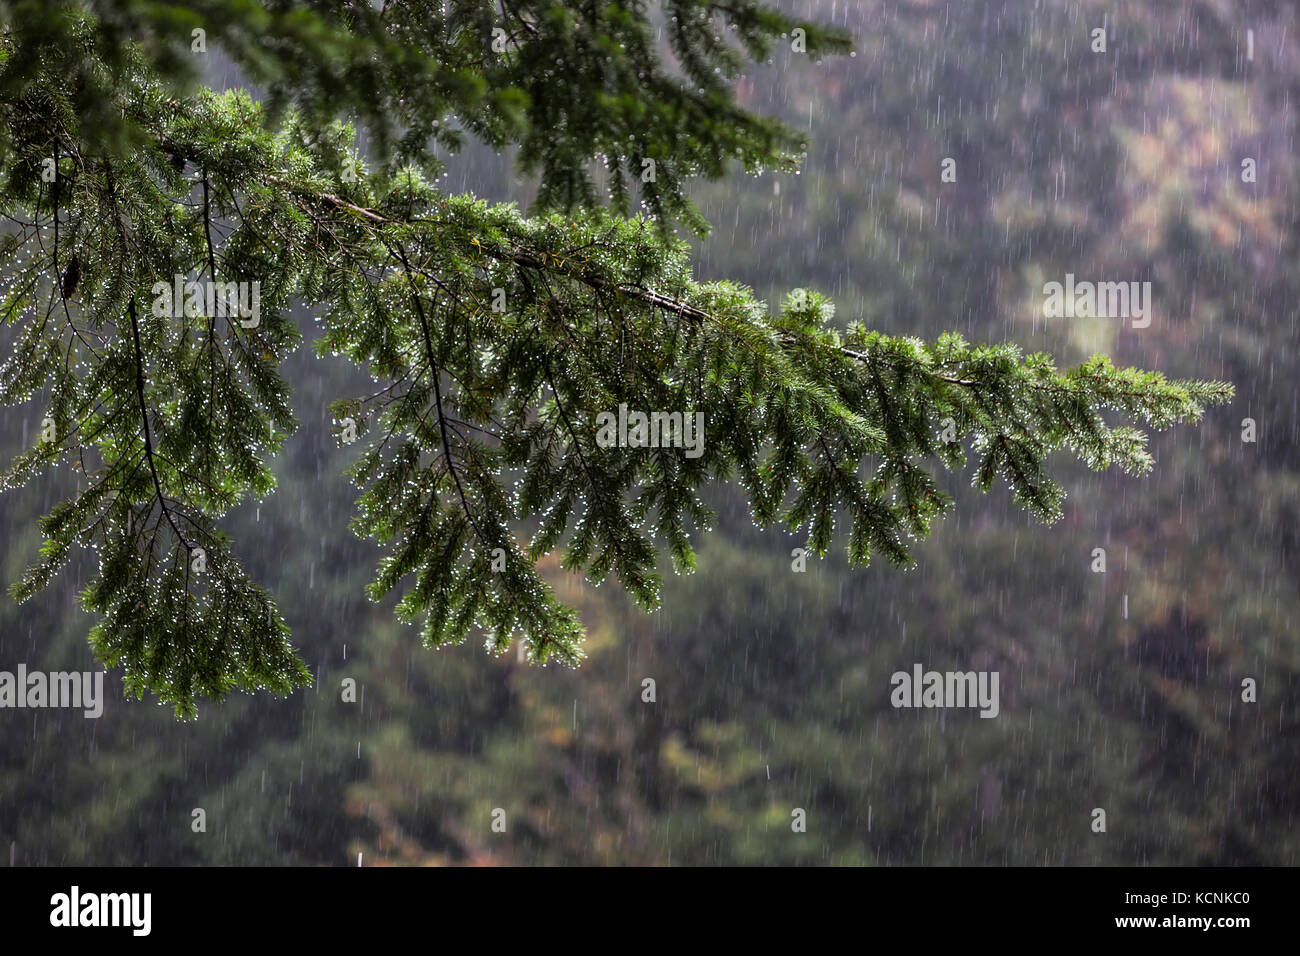 A heavy downpour soaks a fir tree, a common sight on the West Coast, The Comox Valley. - Stock Image